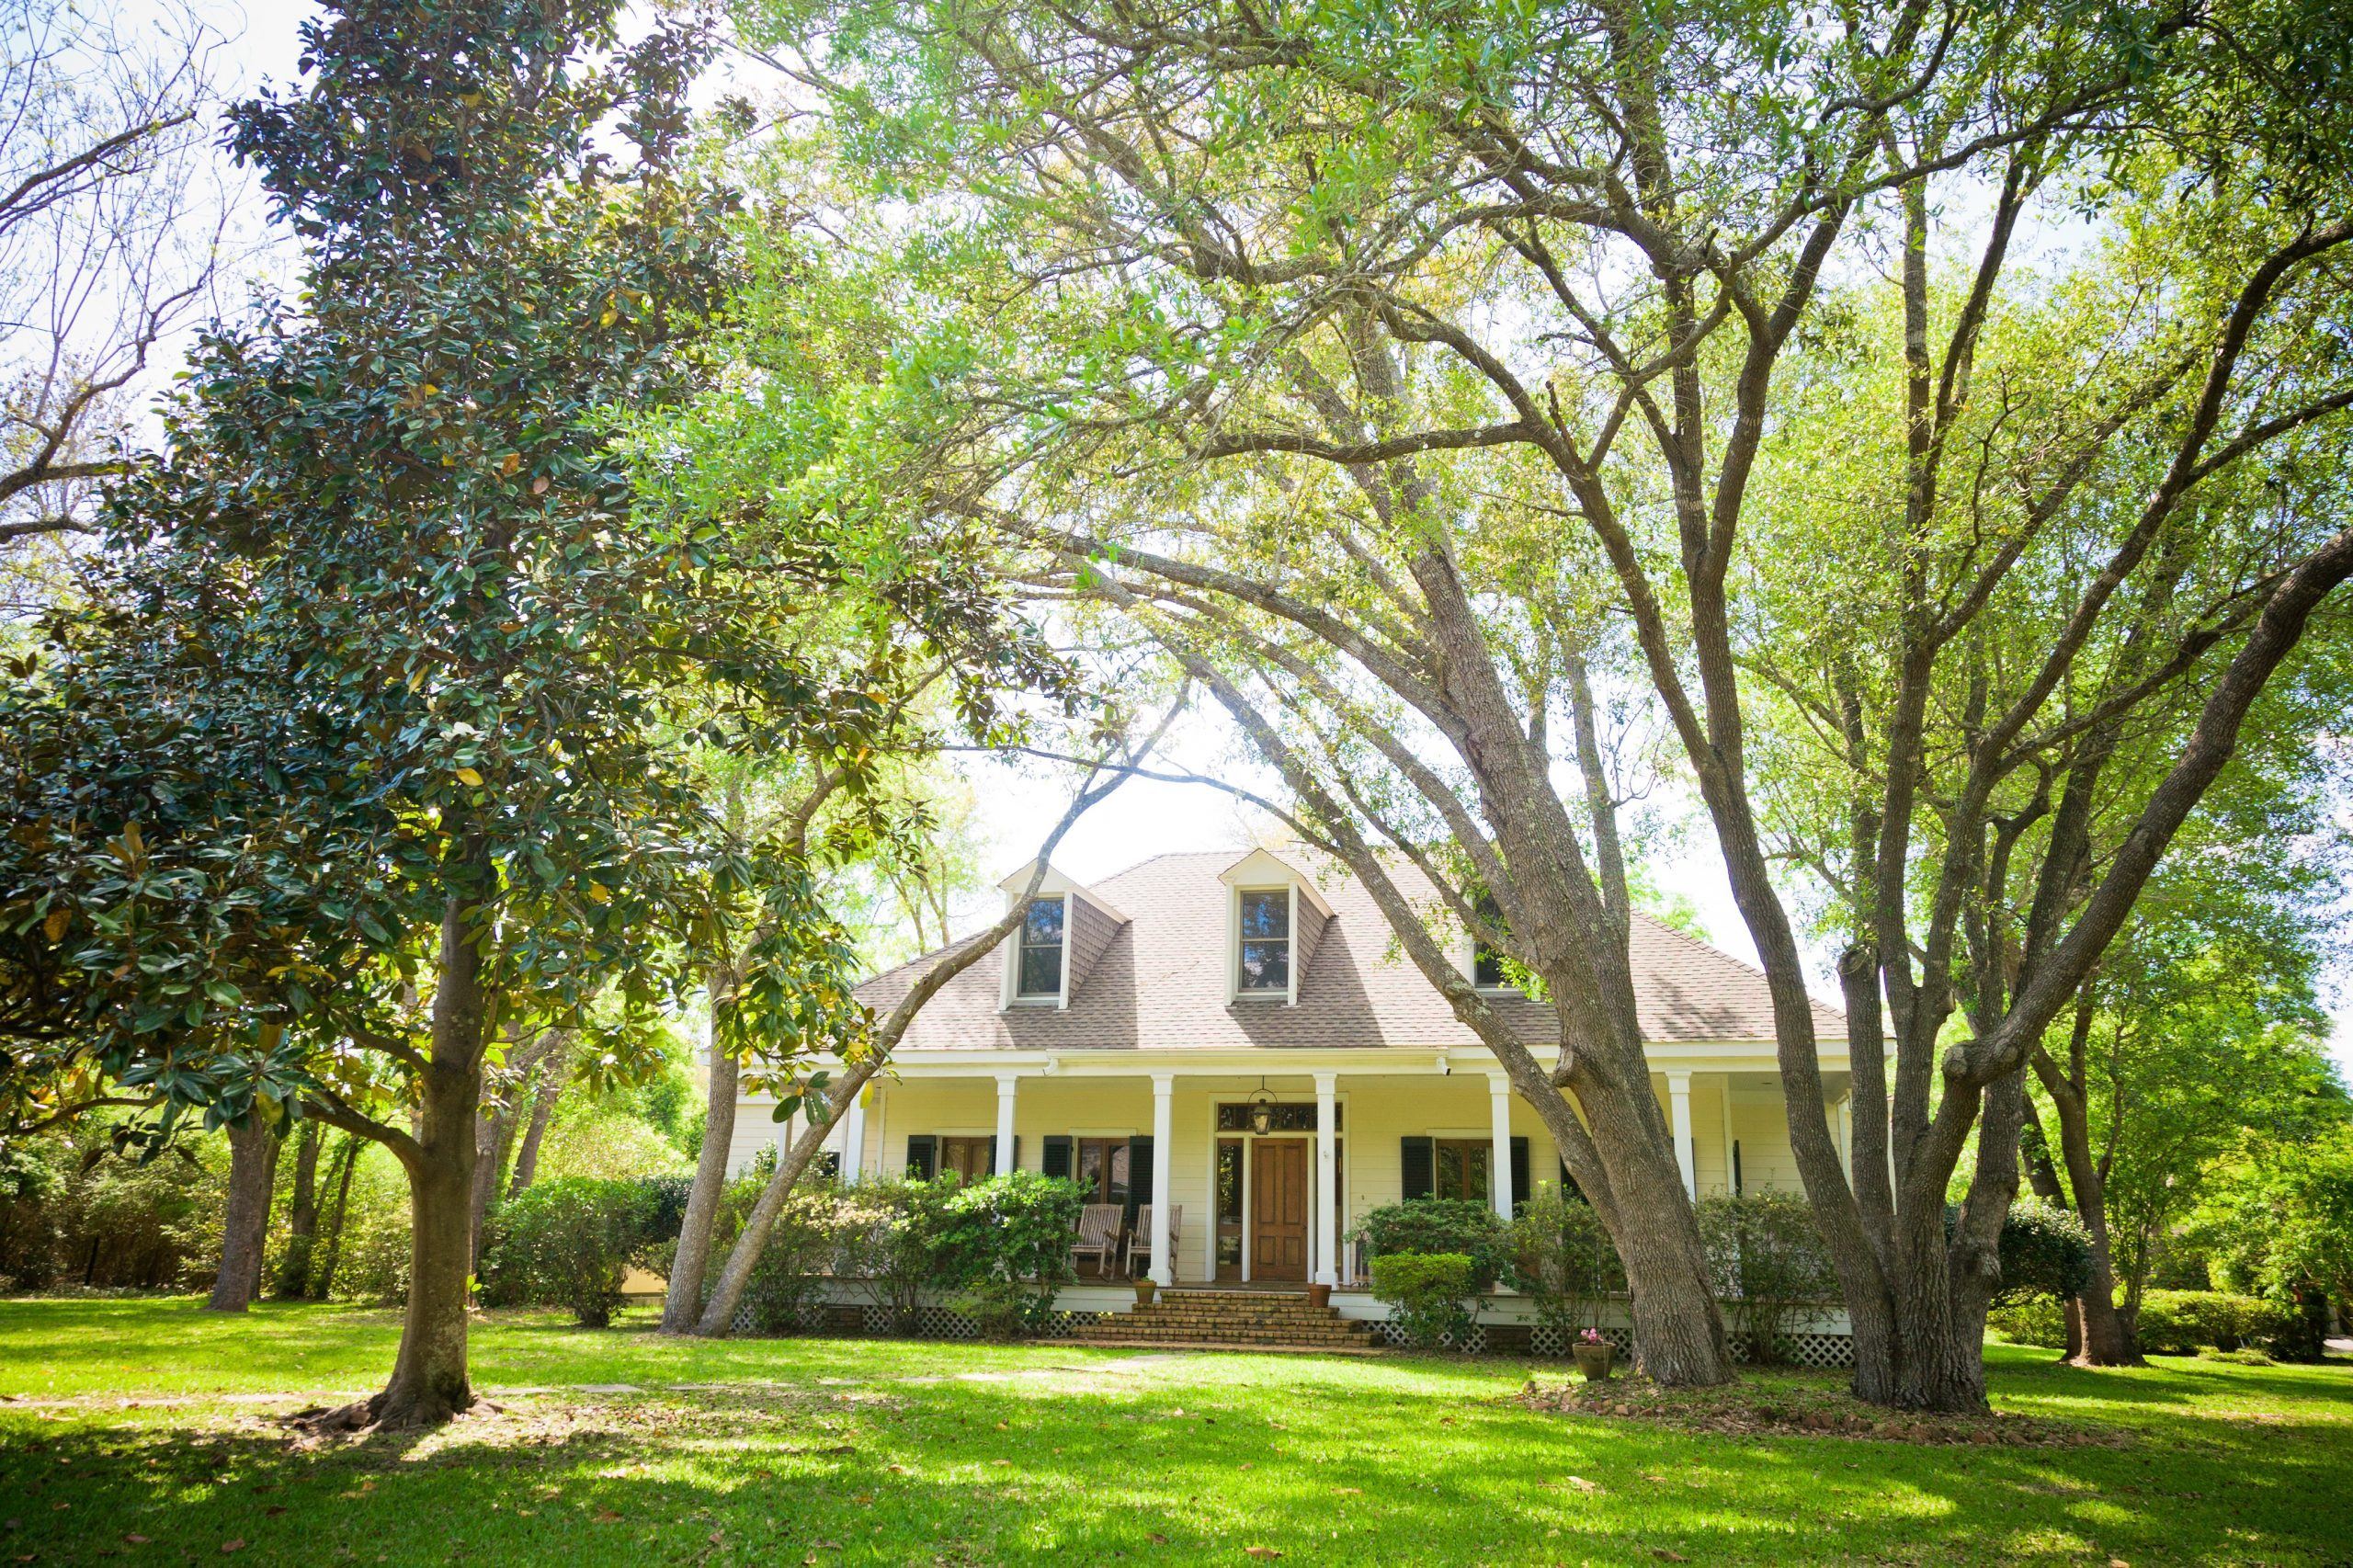 A large ranch style country home with a wrap around porch and dormer windows. The large yard features a mature landscape with trees, bushes and grass.